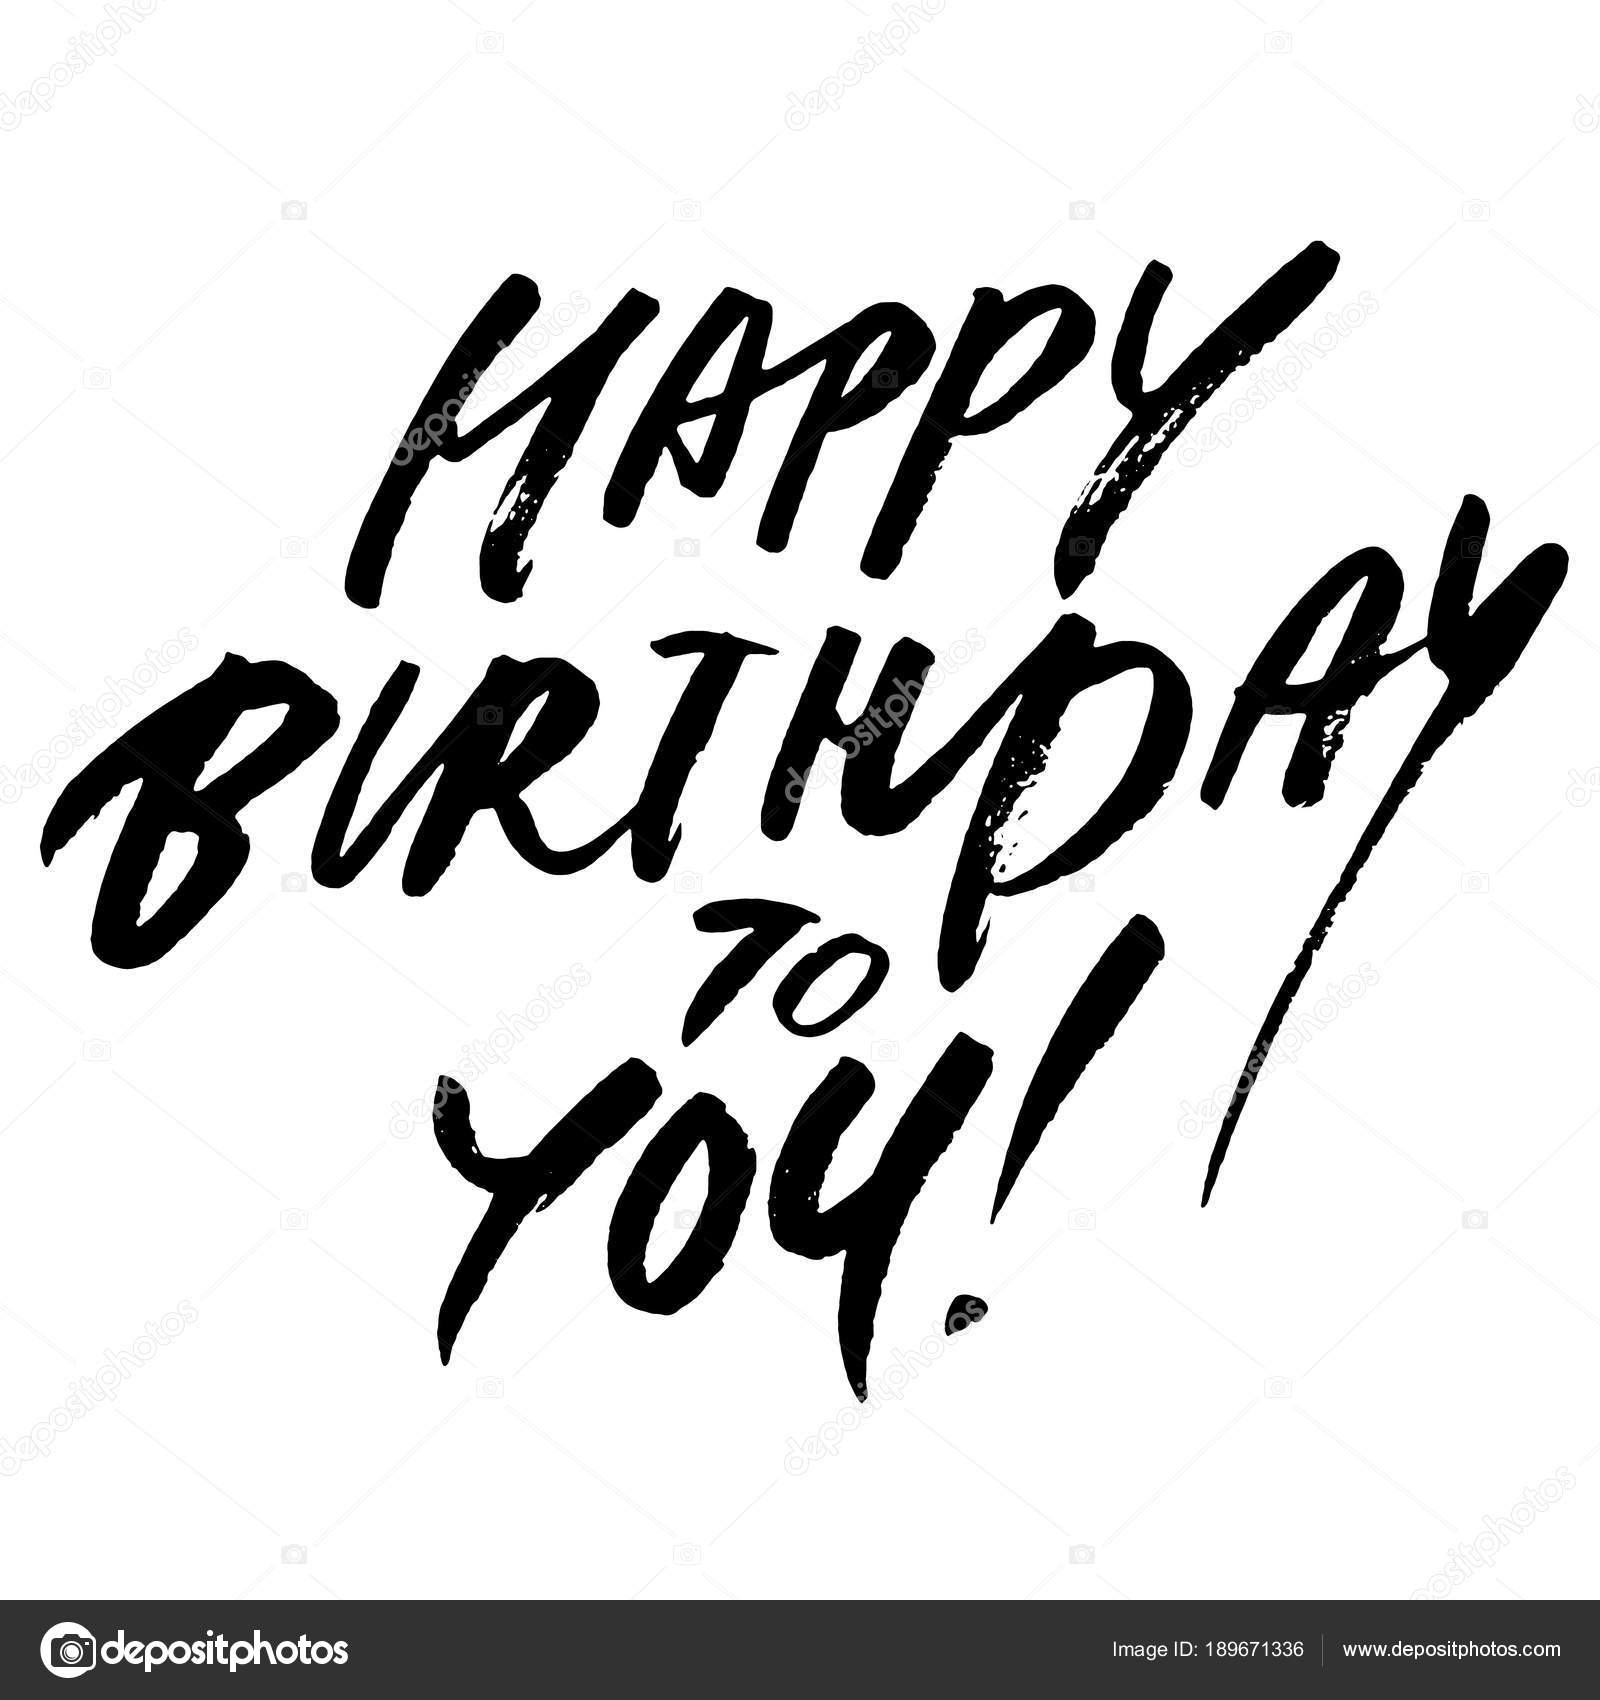 Happy Birthday To You Words Hand Drawn Creative Calligraphy And Brush Pen Lettering Design